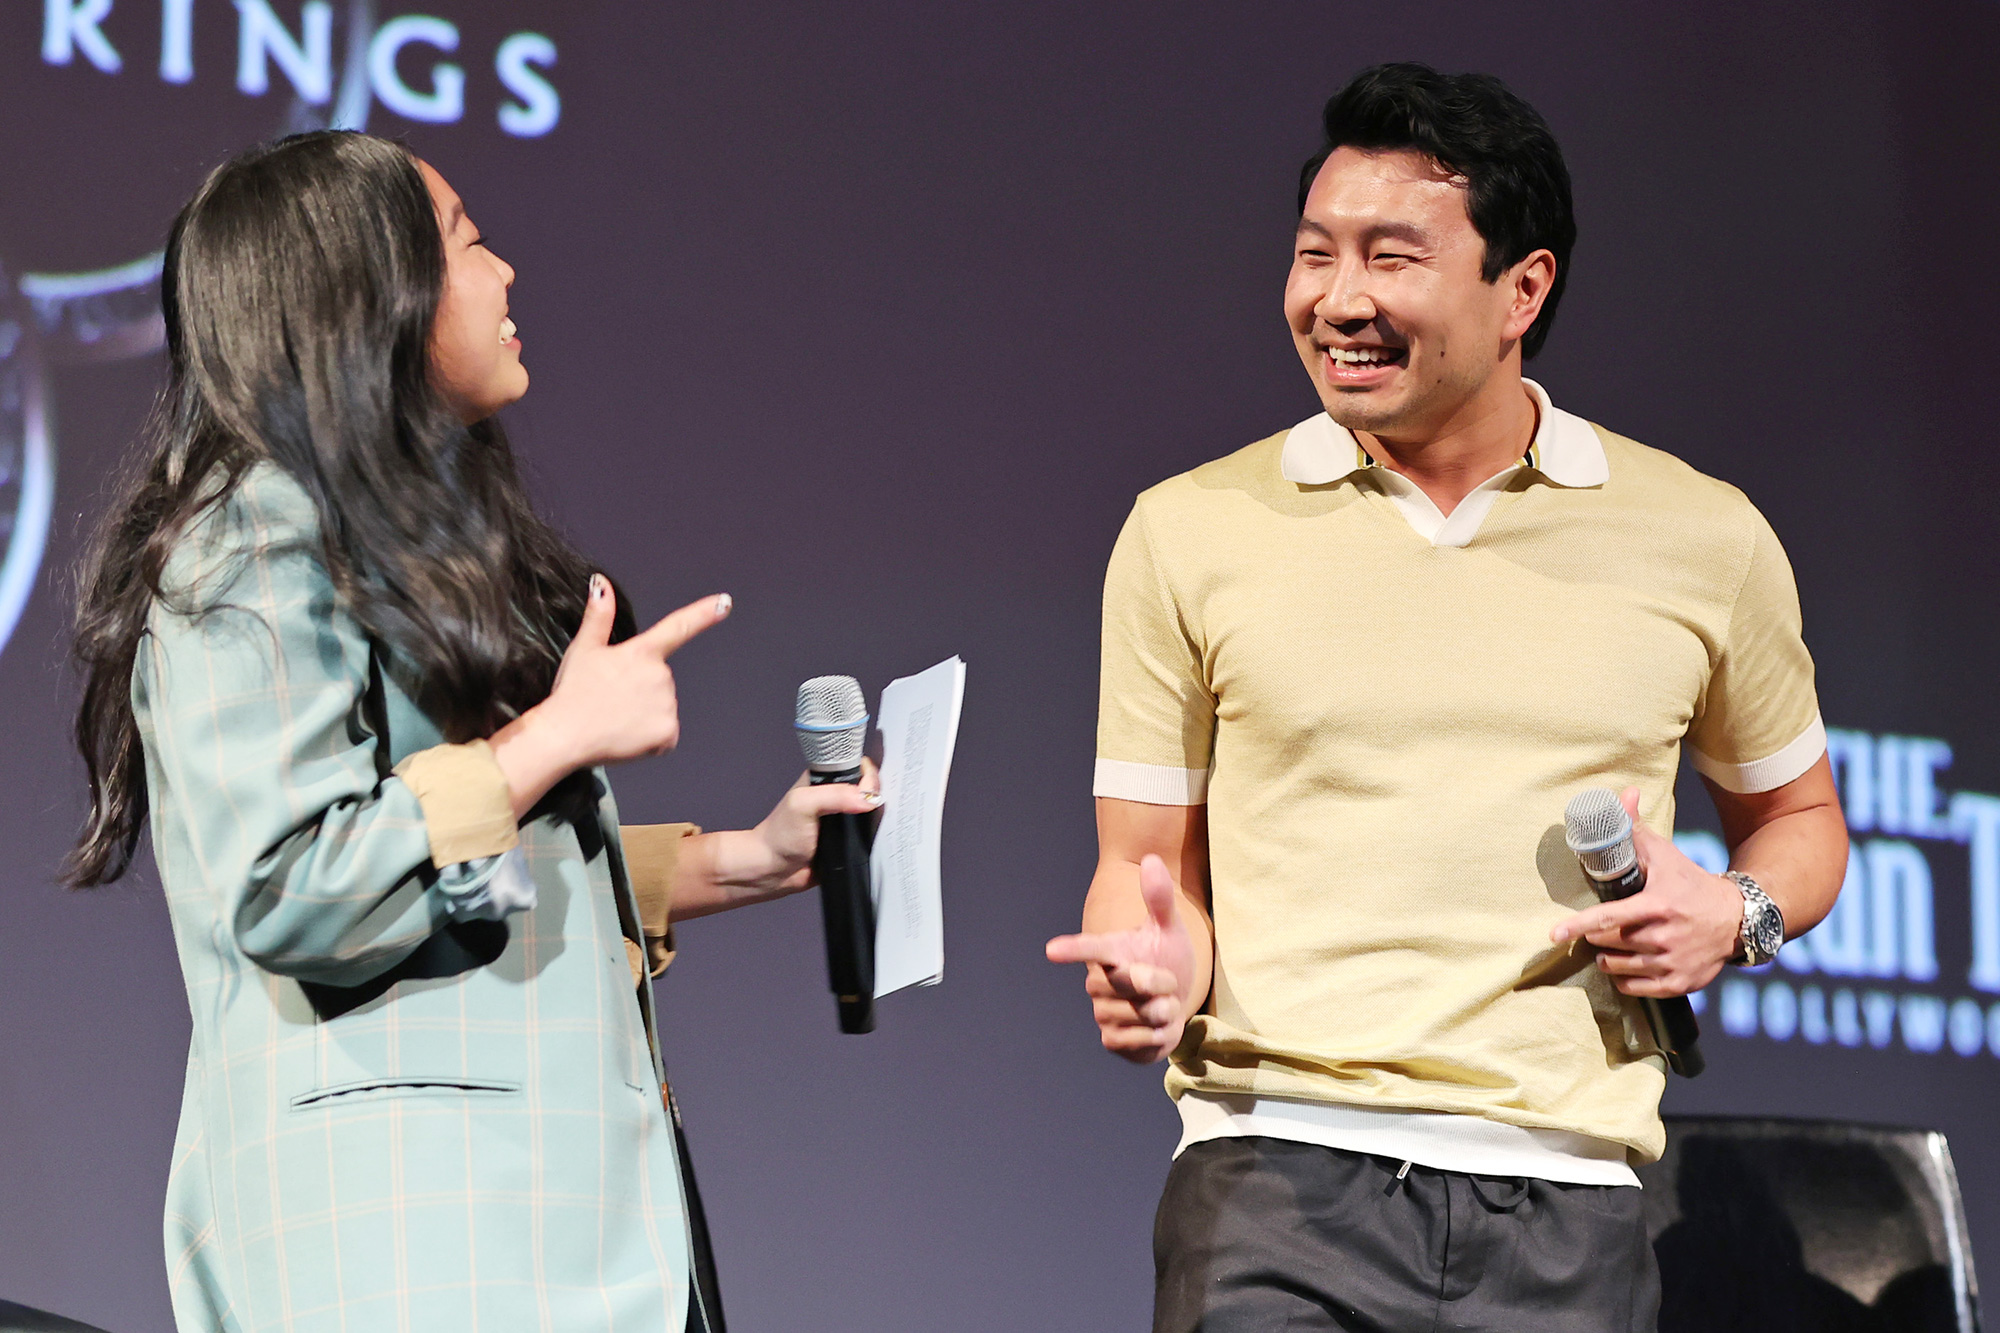 Awkwafina, Simu Liu, and Meng'er Zhang speak onstage at the Los Angeles VIP Gold Open Premiere + Q&A of Marvel Studios' SHANG-CHI AND THE LEGEND OF THE TEN RINGS at El Capitan Theatre on August 23, 2021 in Los Angeles, California